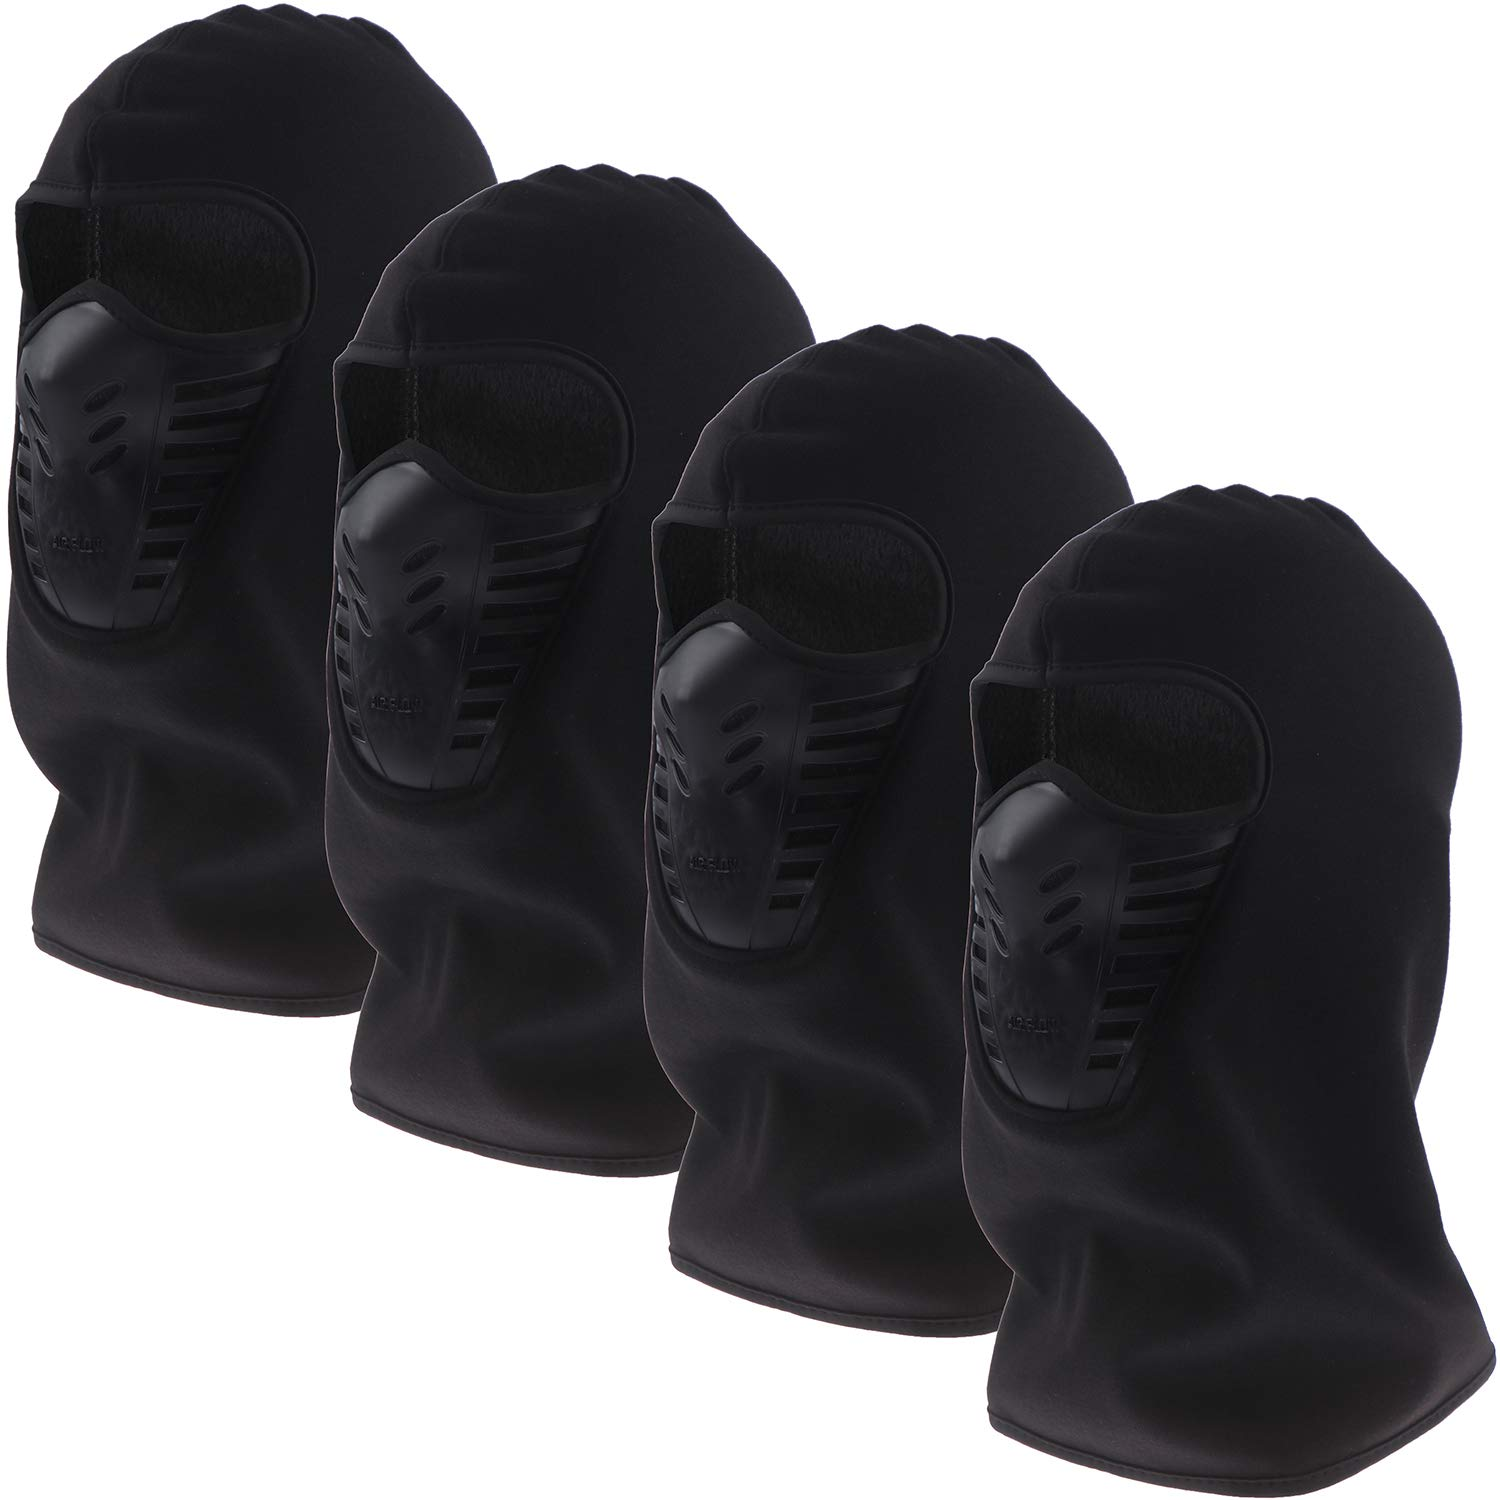 Balaclava Face Mask/Headwear Windproof Balaclava/Ski Mask with Thermal Design for Preventing Wind Sun and Dust